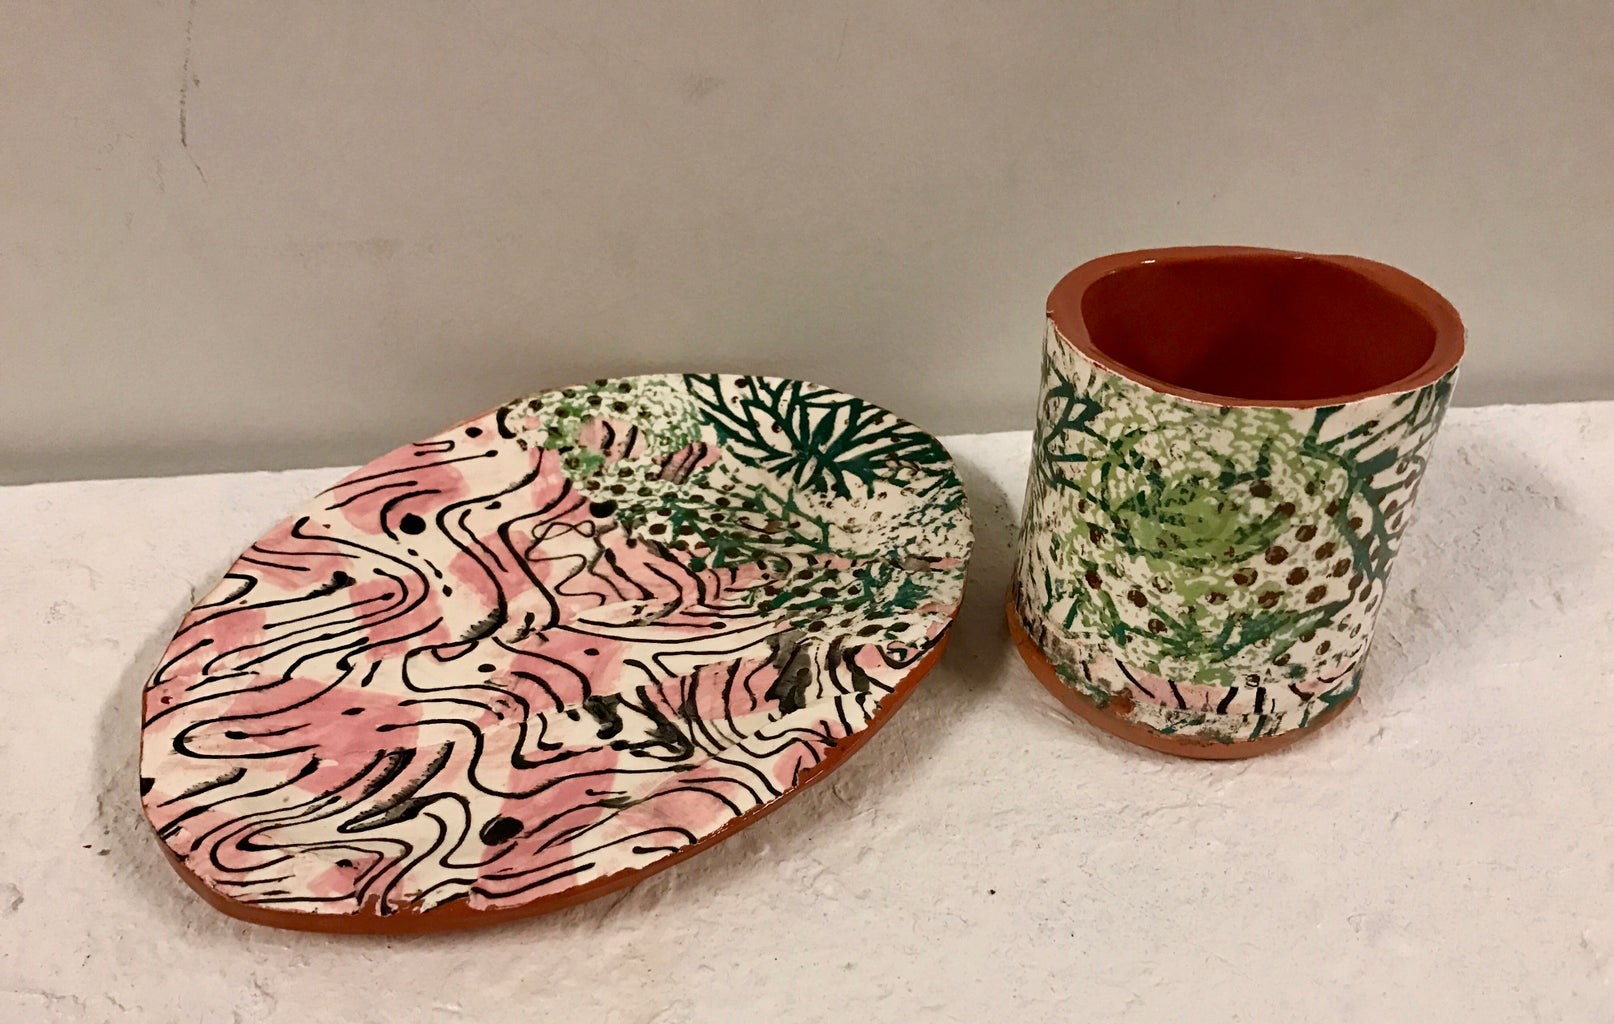 Fire Your Pieces in the Kiln!